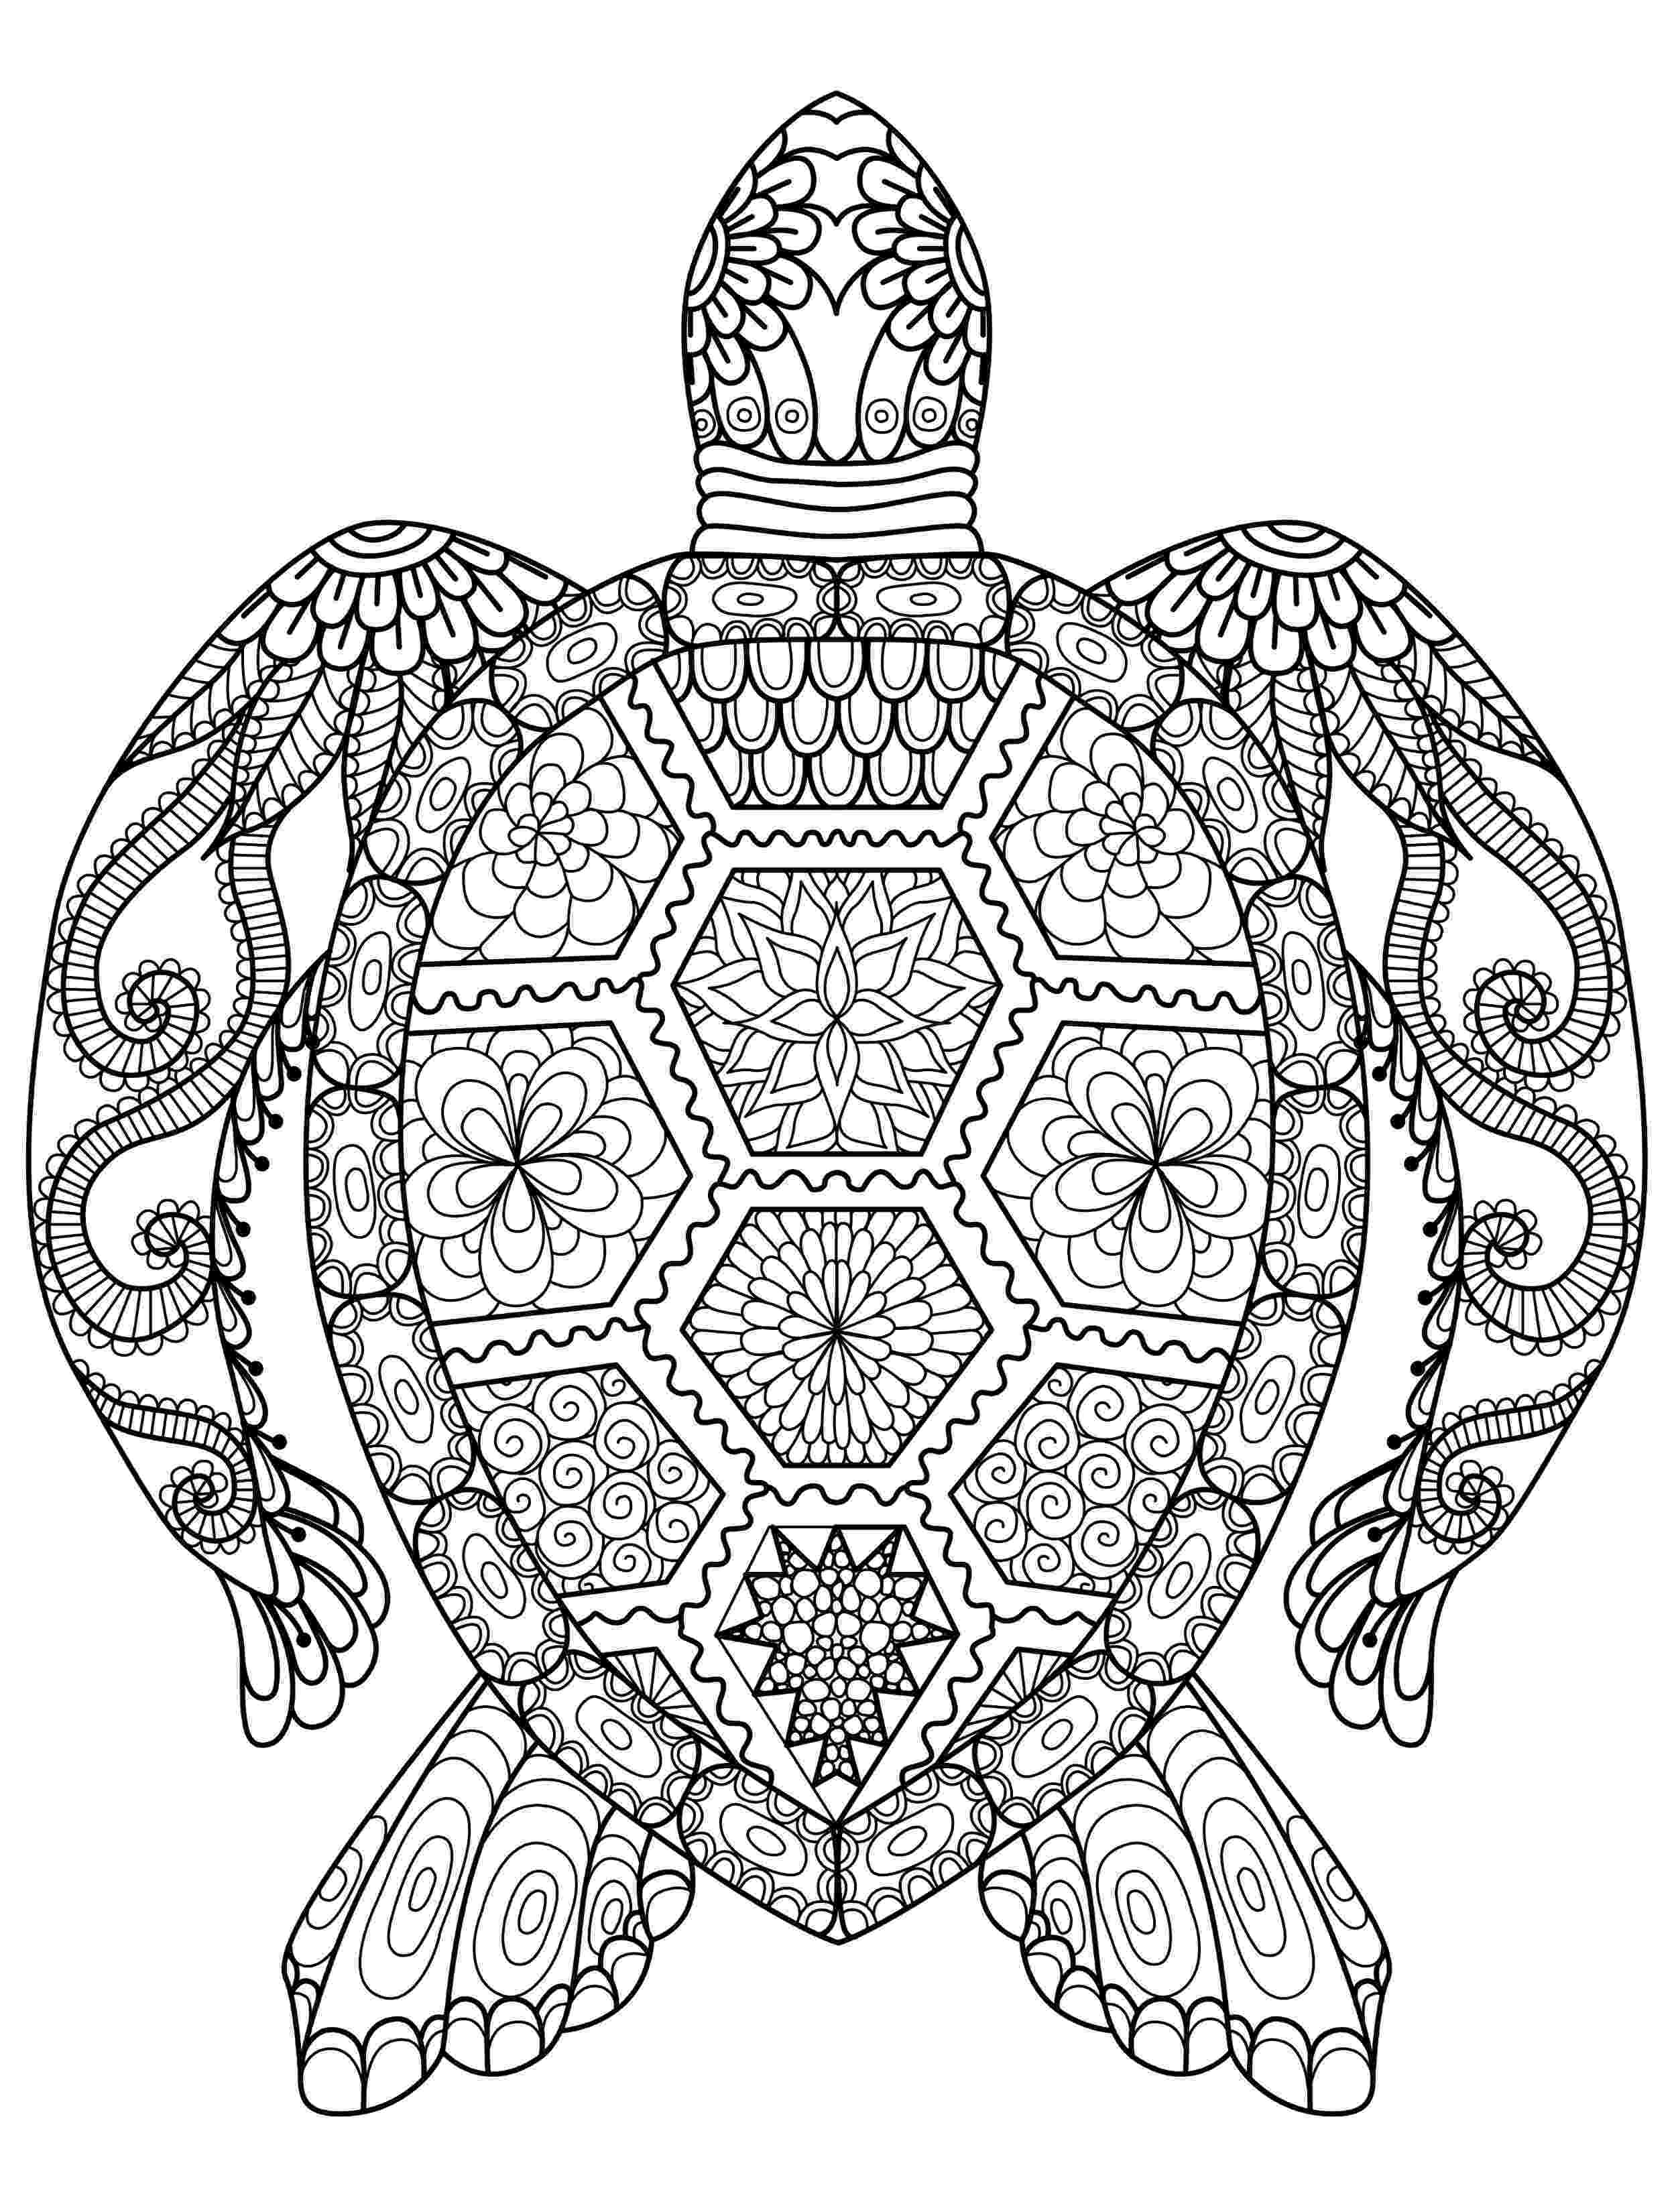 free animal coloring pages adult coloring pages animals best coloring pages for kids animal coloring free pages